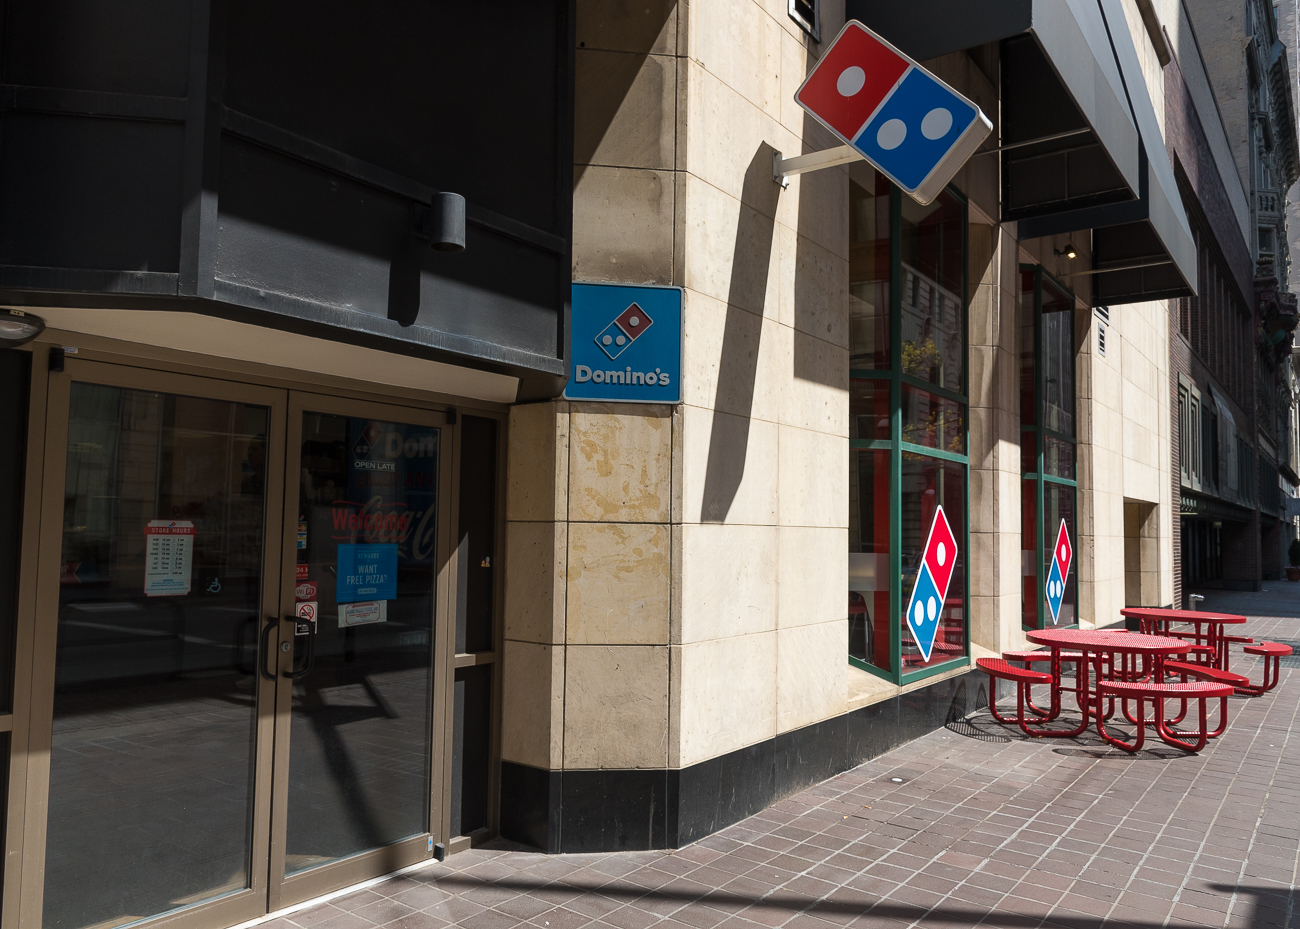 4th Street has pizza: Dominos / ADDRESS: 28 W 4th Street / Image: Phil Armstrong, Cincinnati Refined // Published: 4.23.18